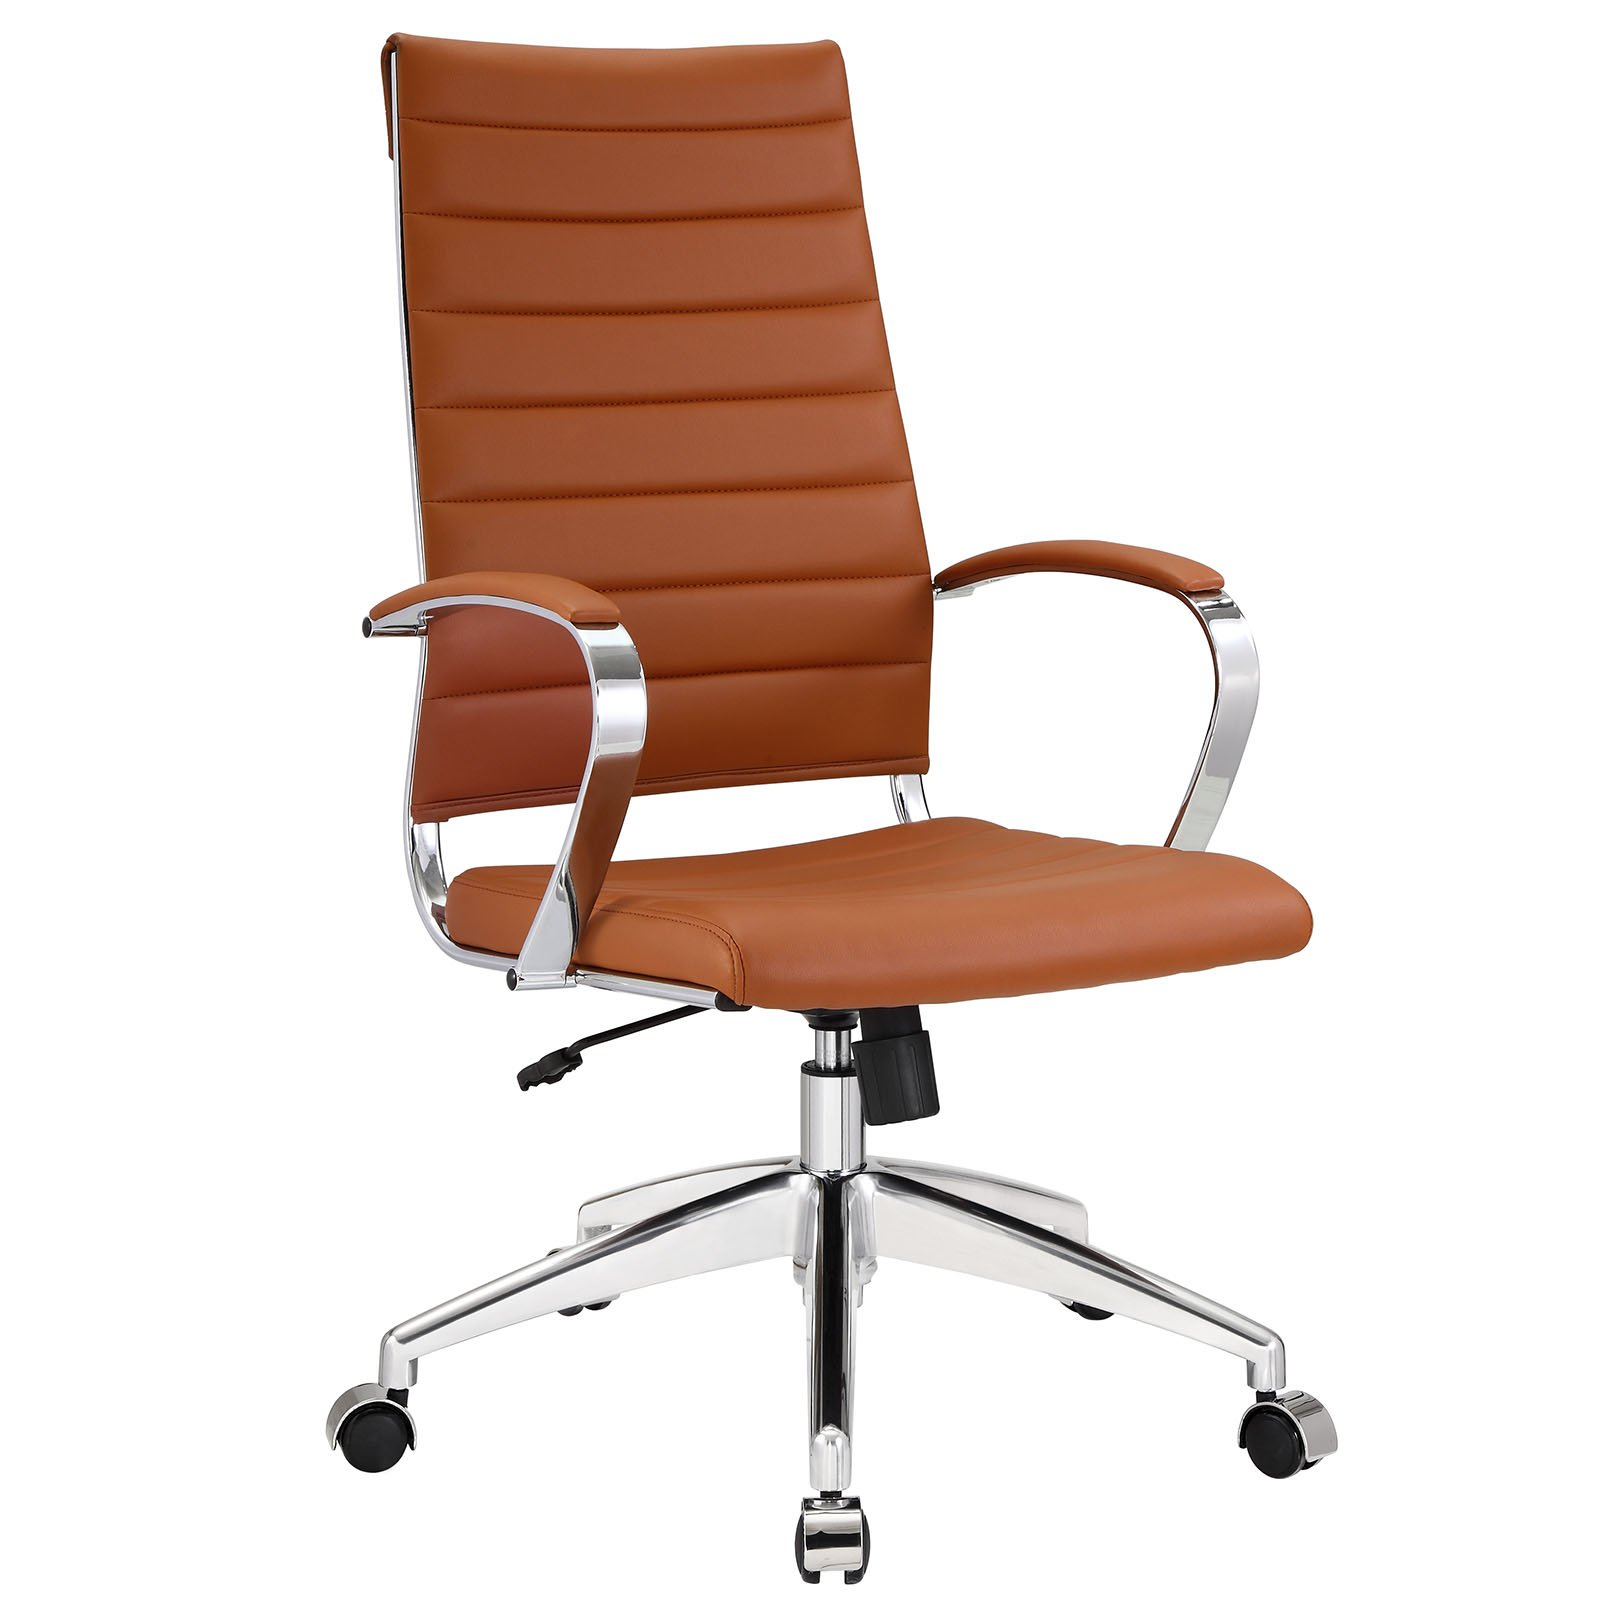 Modway Jive Ribbed High Back Executive Office Chair, Terracotta Vinyl by Modway